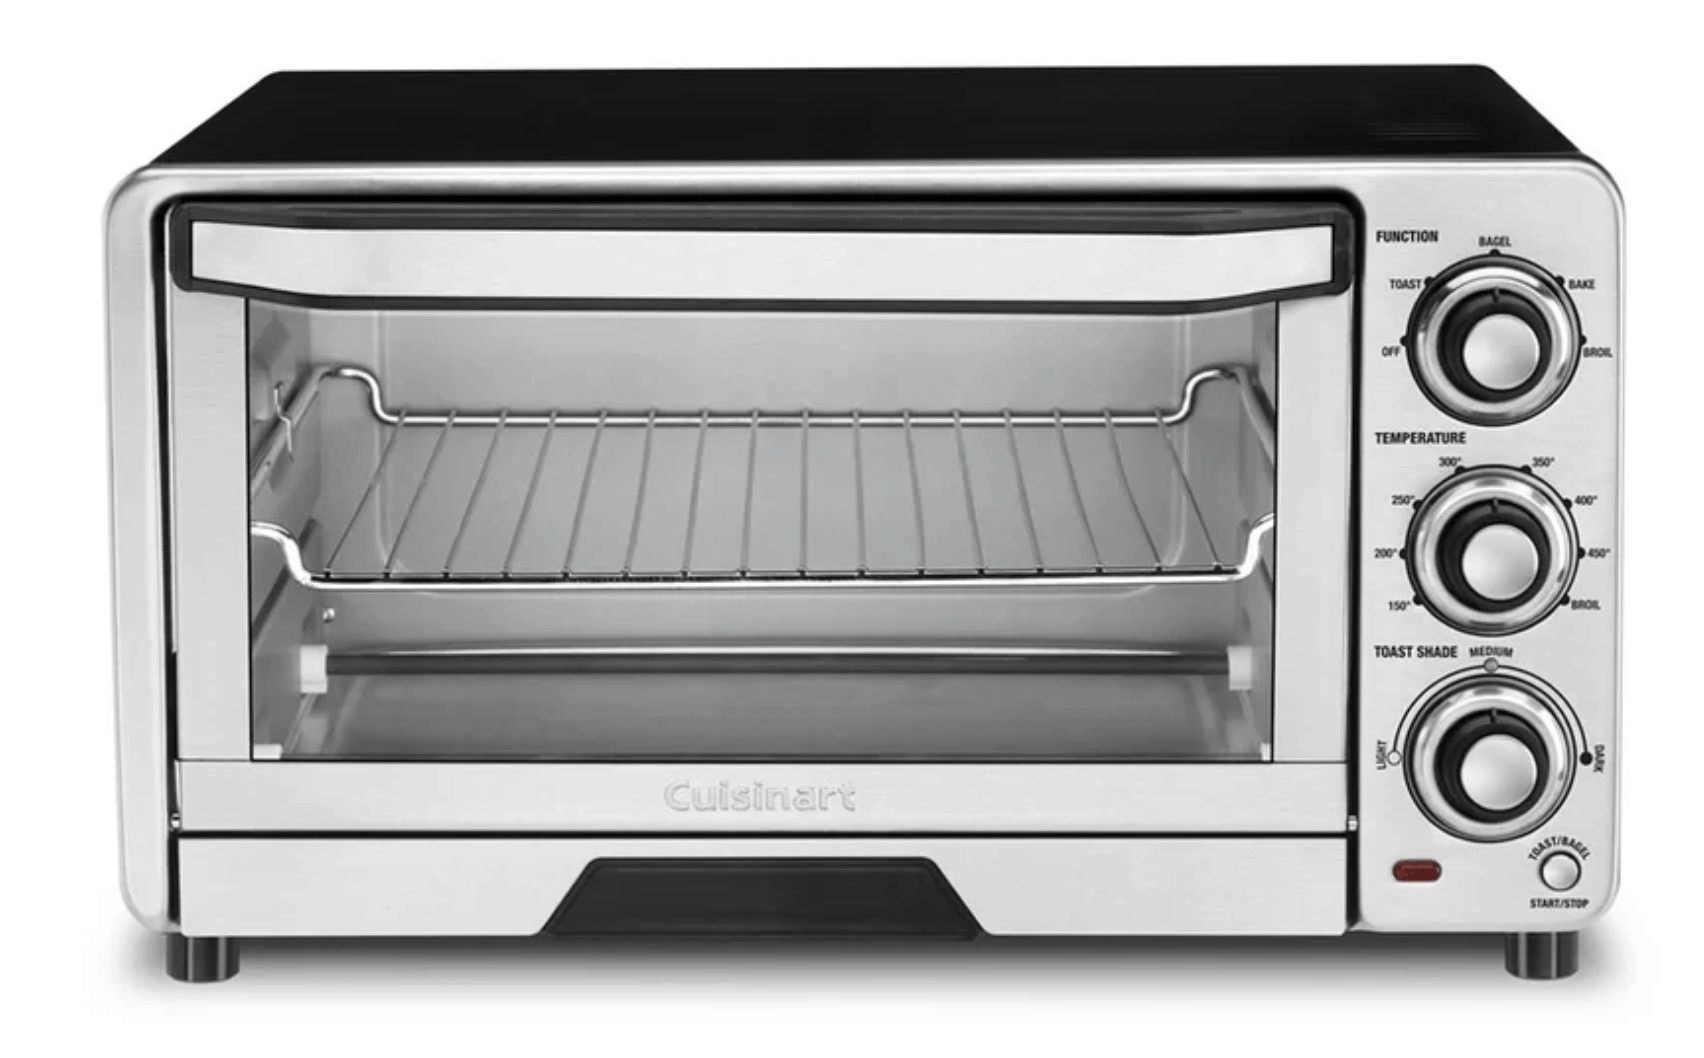 Small stainless steel toaster oven by Cuisinart